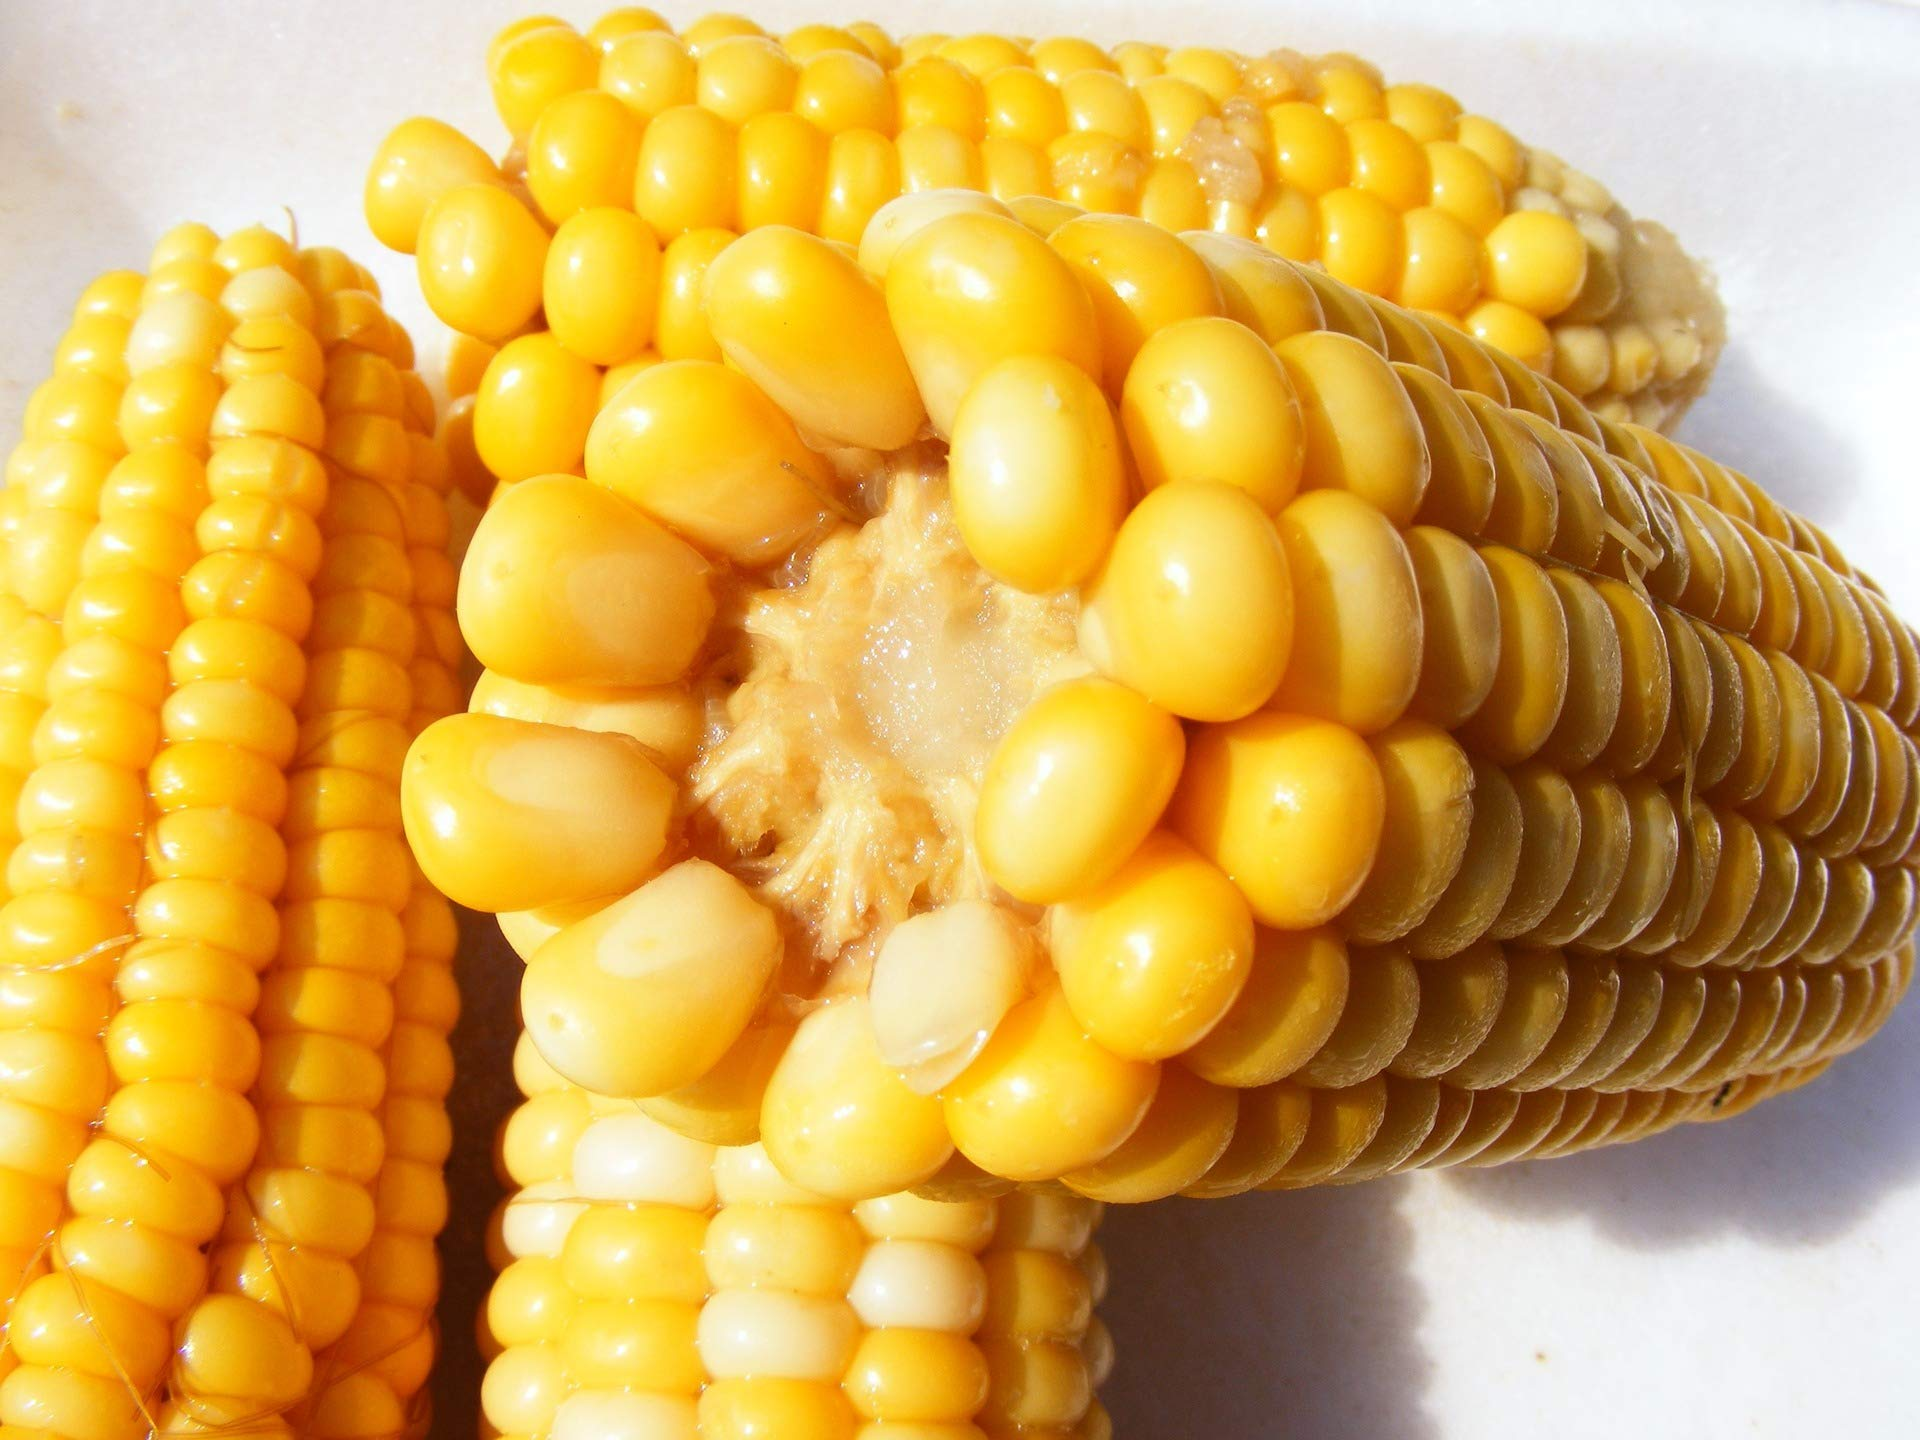 Golden Bantam Corn Sweet Heirloom binC1 (9500 Seeds, or 5 lb)